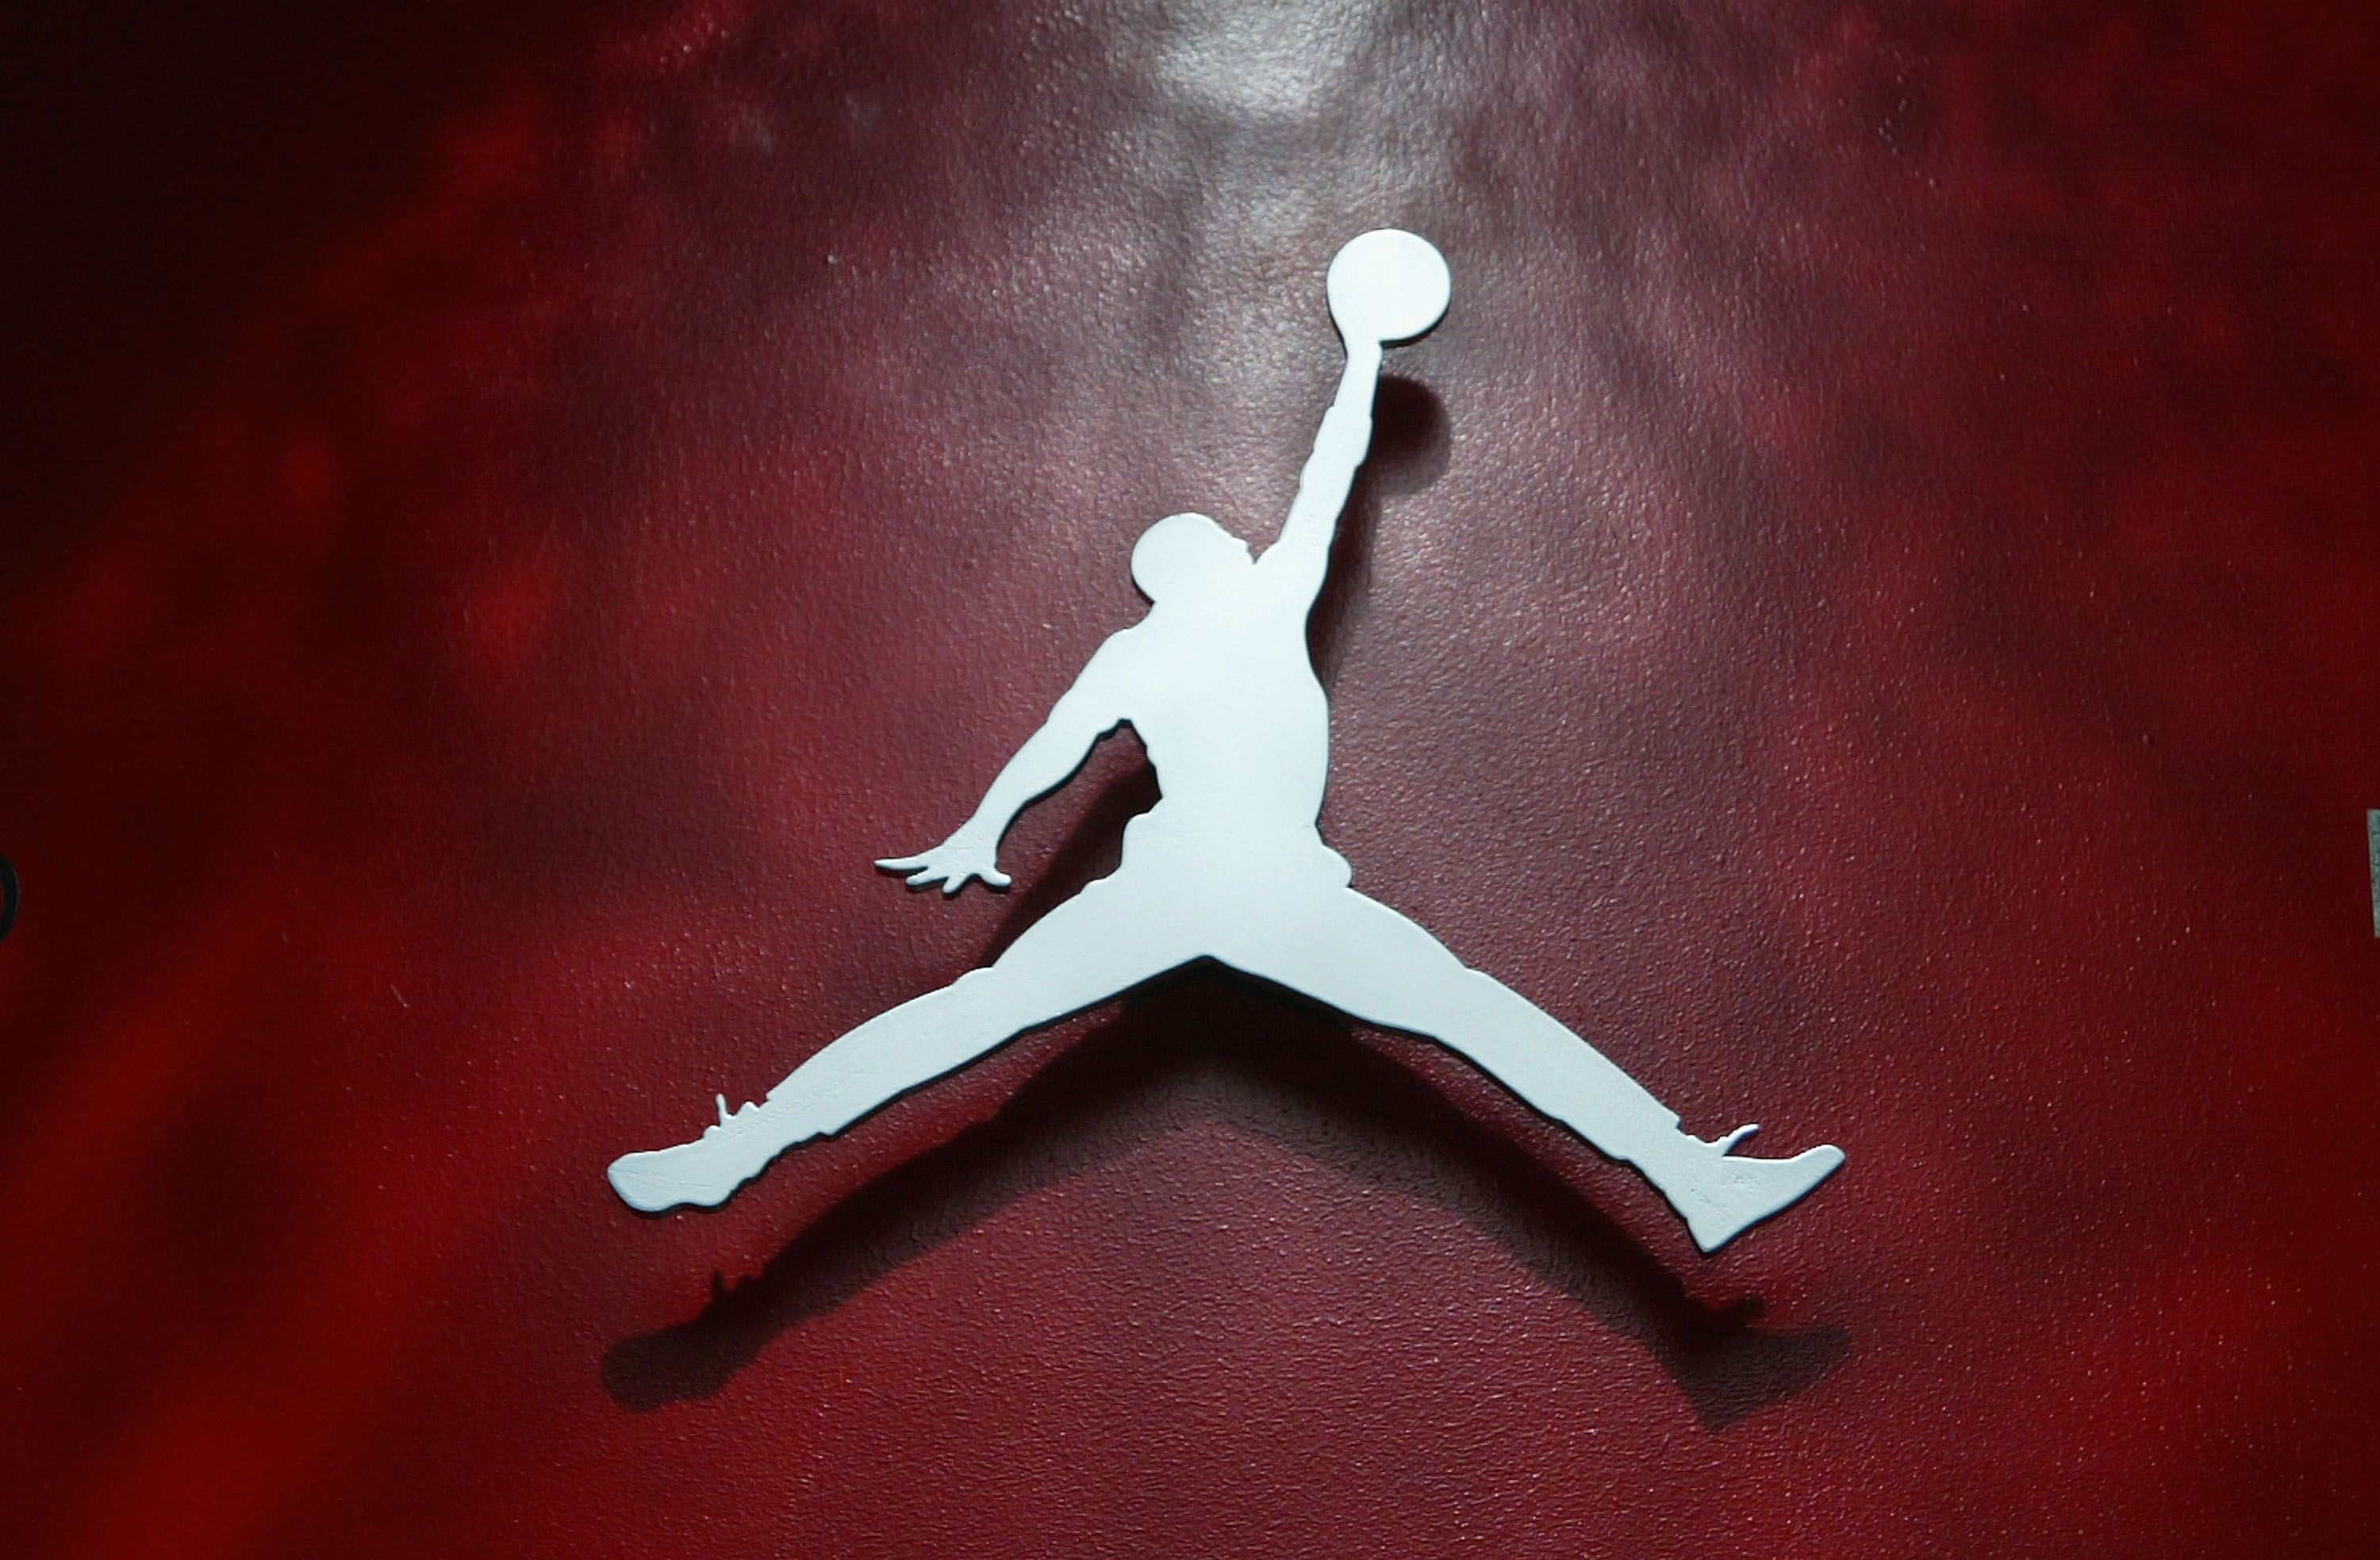 Air Jordan Logo - Nike: Michael Jordan Brand Store Opening In Chicago | Fortune